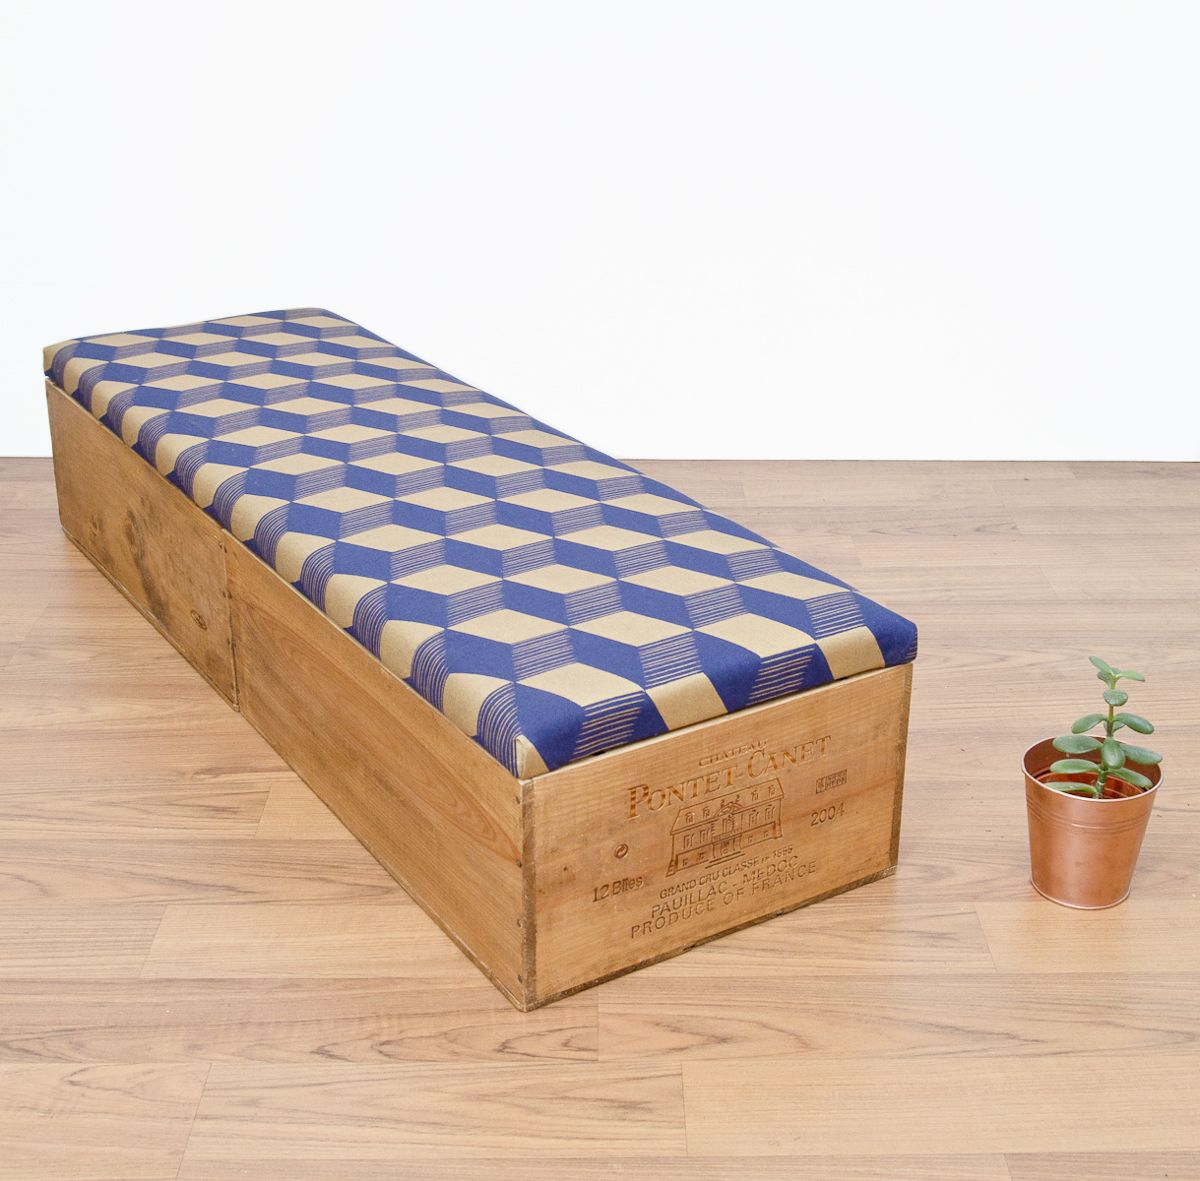 Length Of A Double Bed The Double Length Ottoman Perfect For Stylish End Of Bed